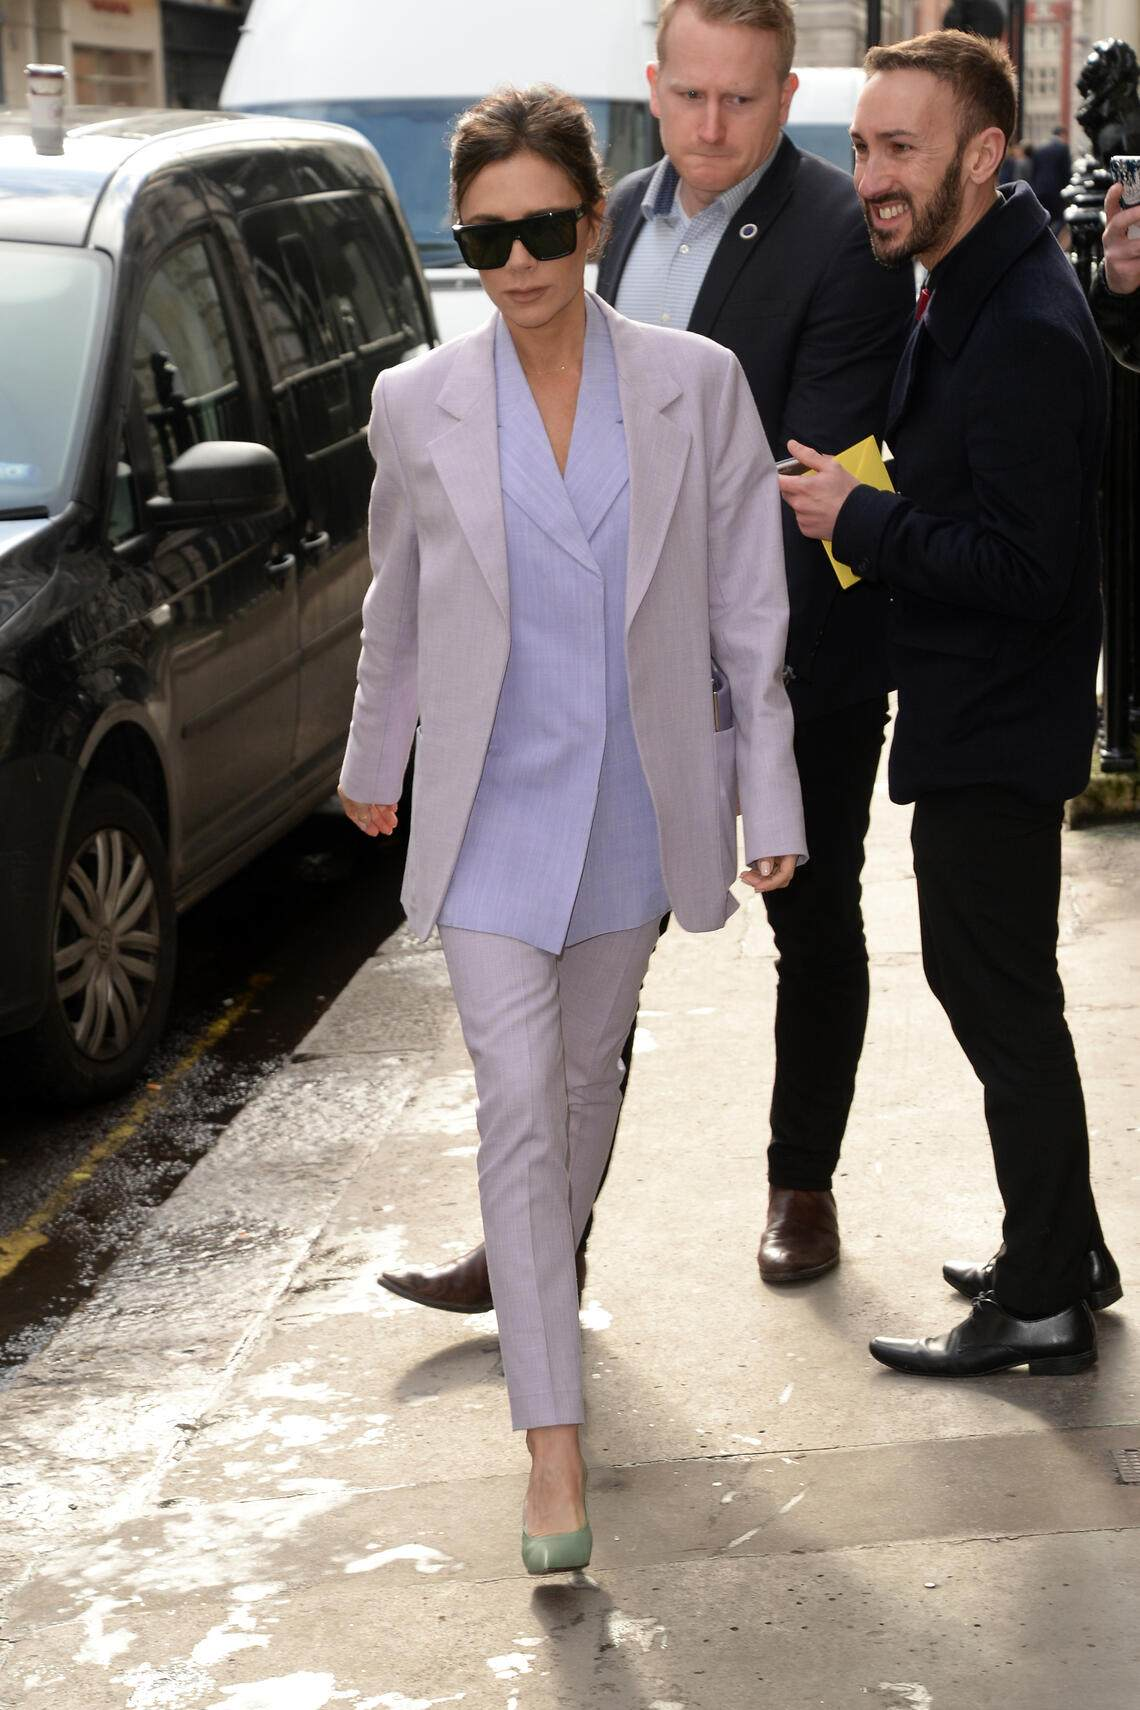 LONDON, UNITED KINGDOM - MARCH 08: Victoria Beckham arrives at her shop in Dover Street on March 08, 2018 in London, England.PHOTOGRAPH BY Barcroft Images (Photo credit should read Barcroft Images / Barcroft Media via Getty Images)